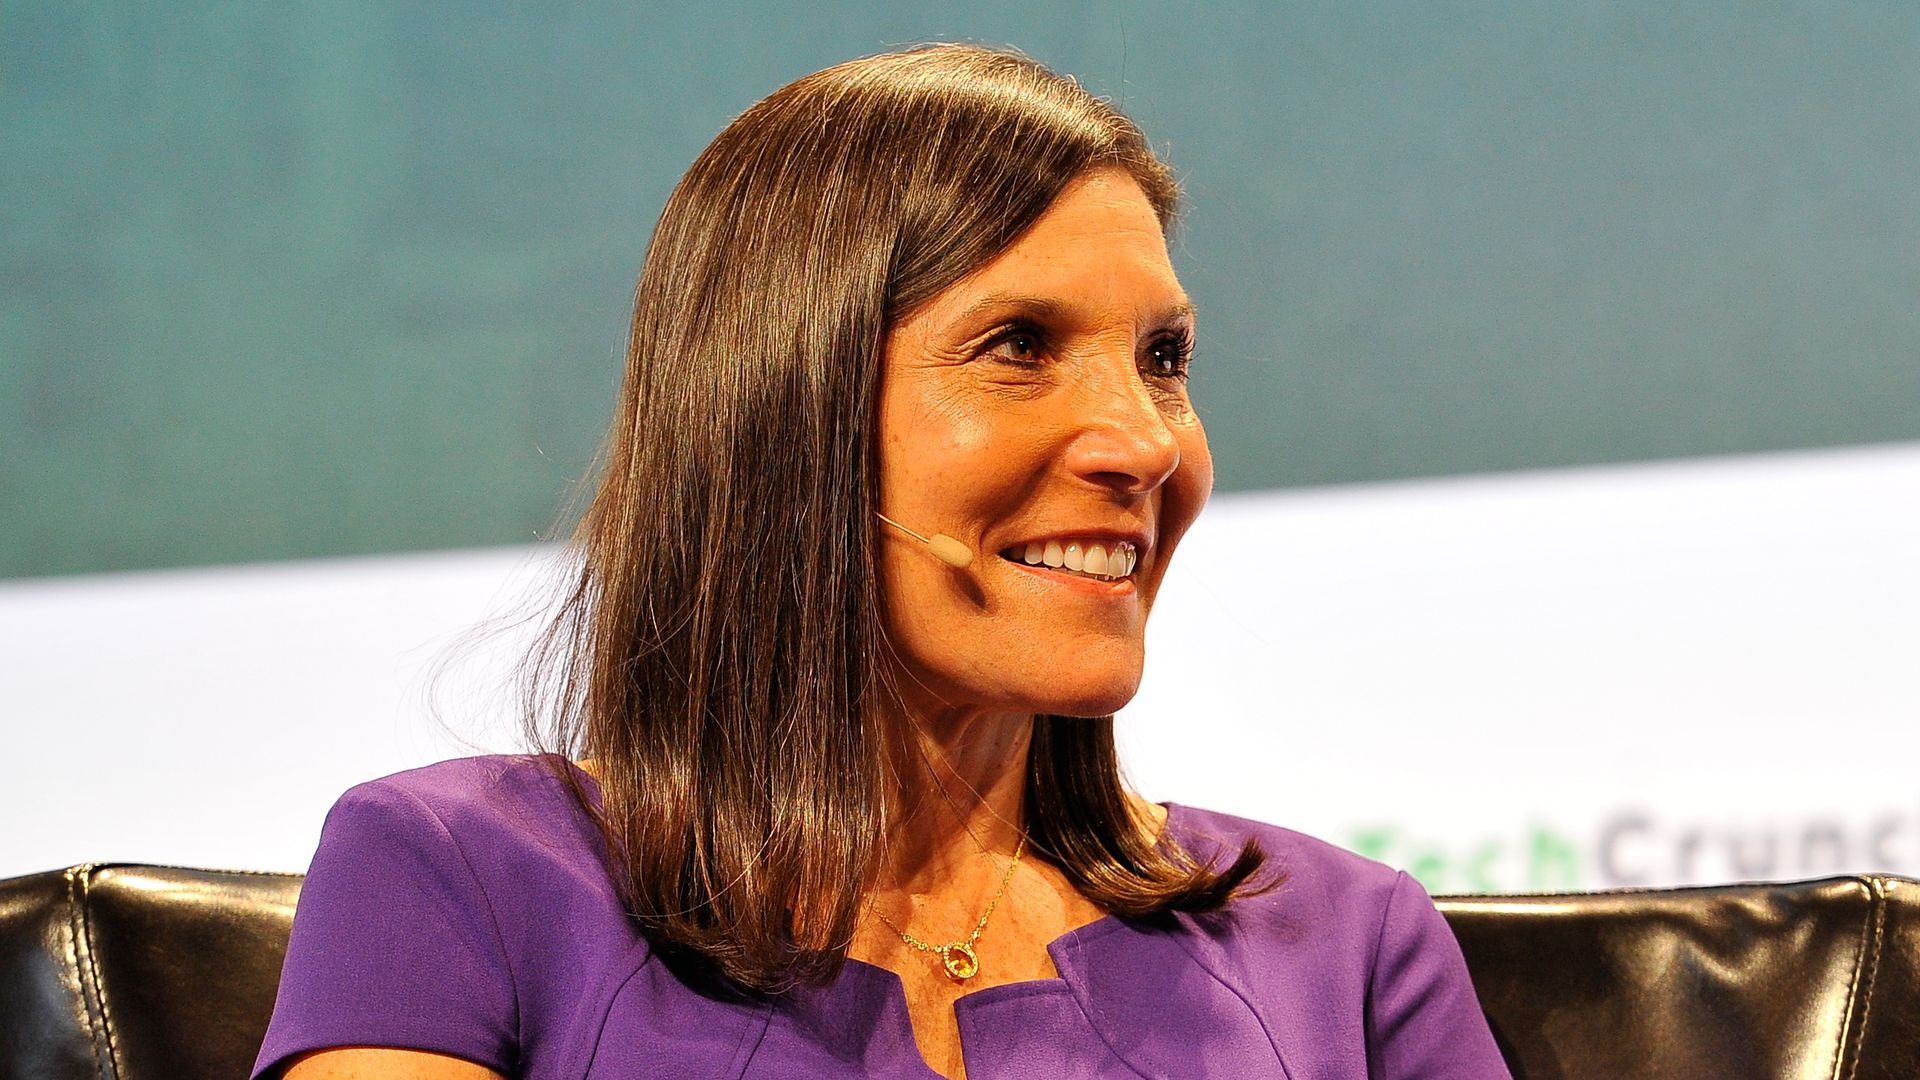 Beth Seidenberg speaking at a TechCrunch conference.